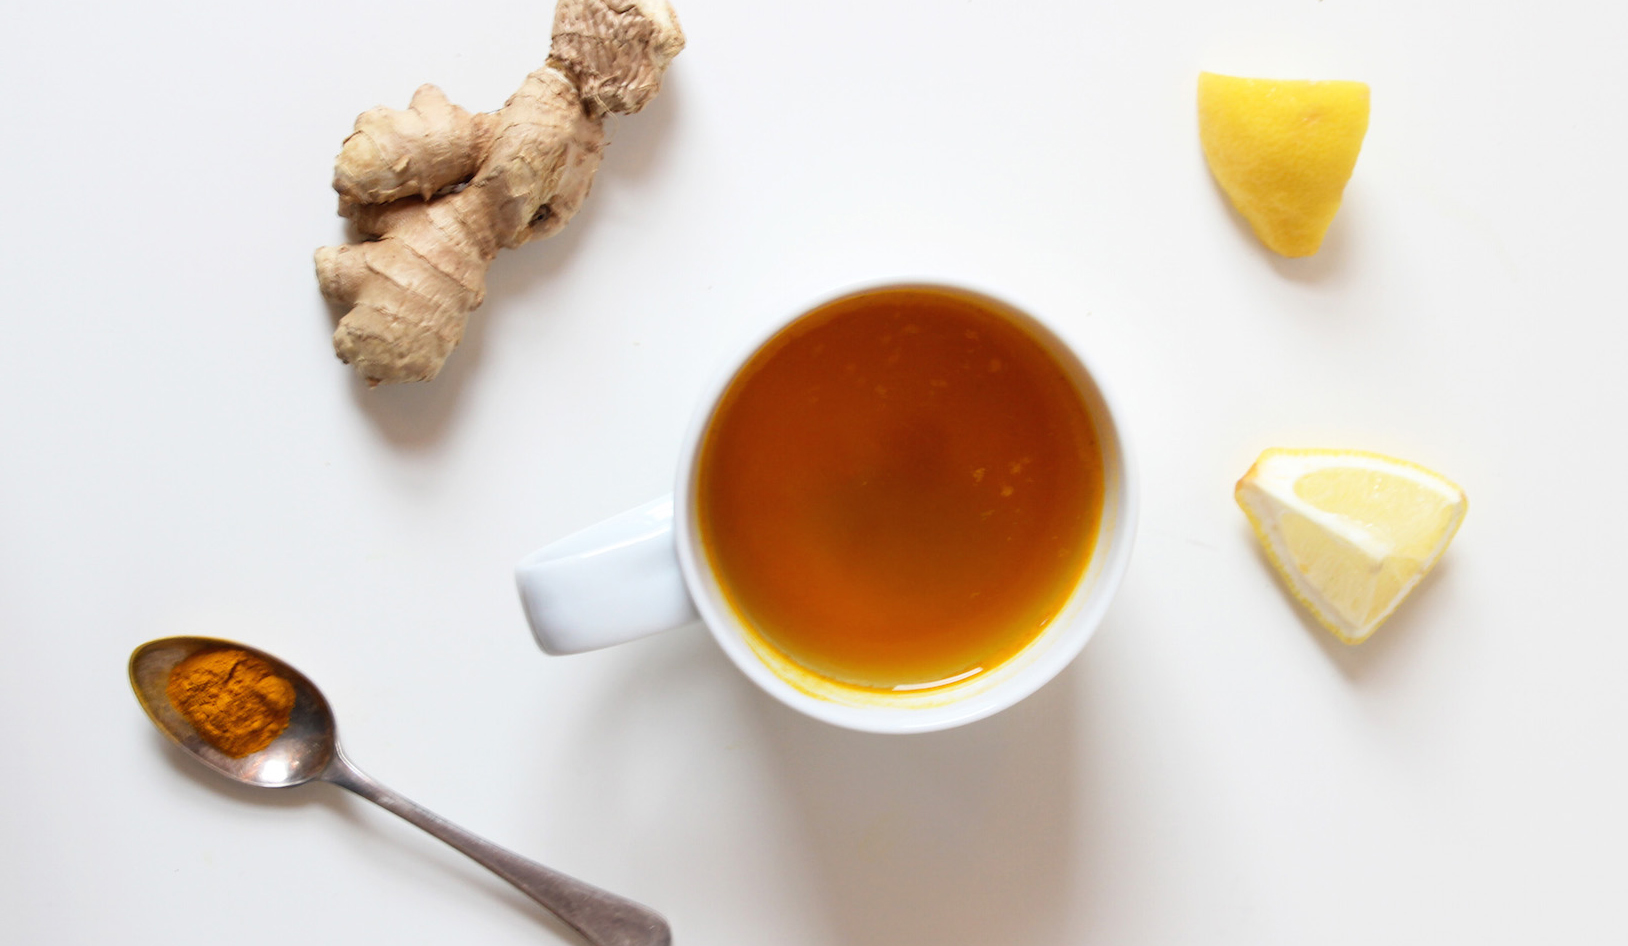 Seeking Fit | Top 10 Turmeric Tea Benefits & 5 Turmeric Tea Recipes